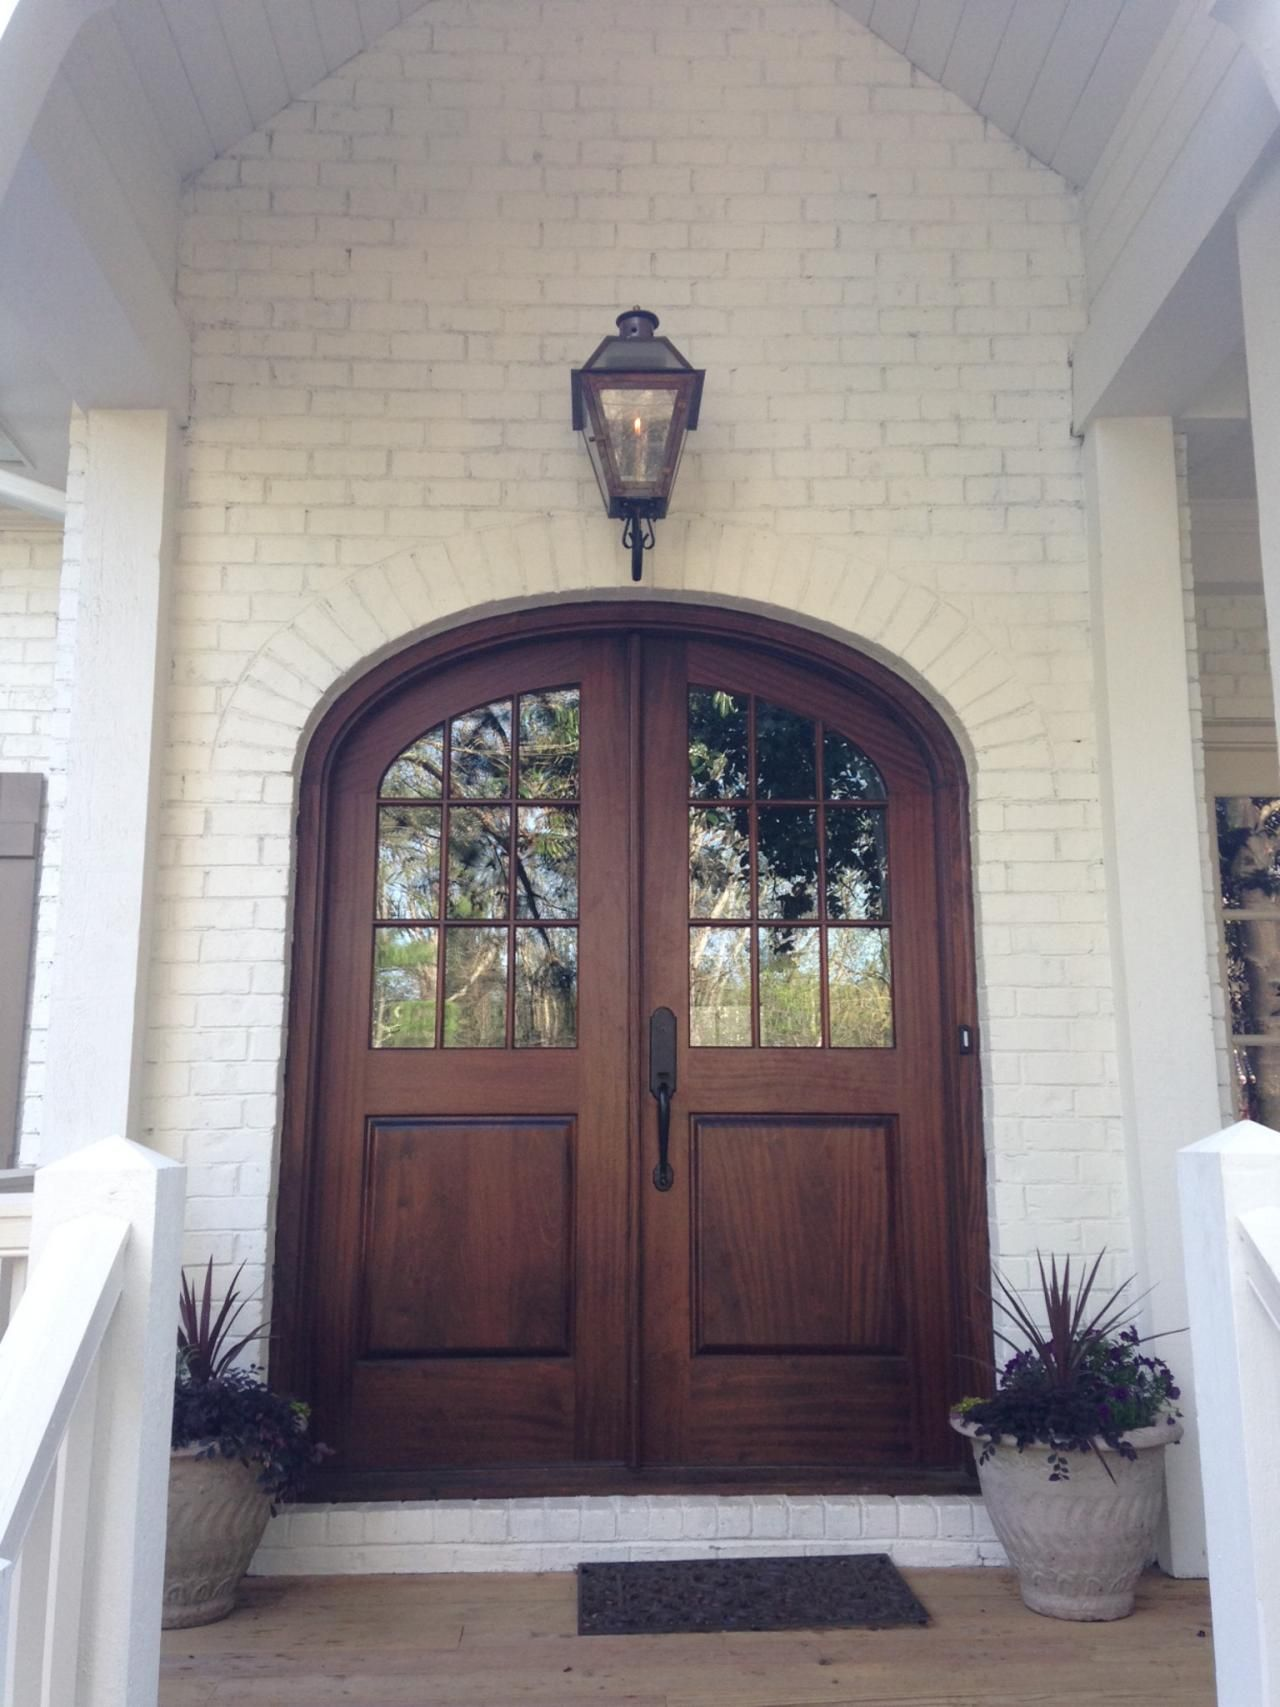 Brown Arched Glass Front Door On White Brick Home Build